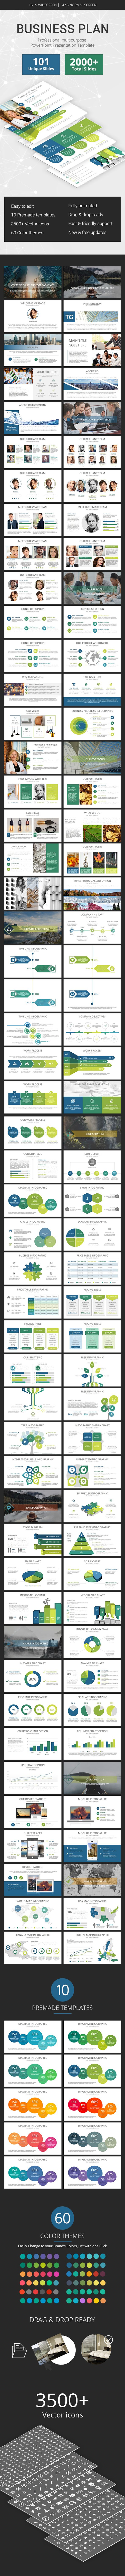 Business Plan PowerPoint Presentation Template - Business PowerPoint Templateshttps Download here: https://graphicriver.net/item/business-plan-powerpoint-presentation-template/18725689?ref=classicdesignp